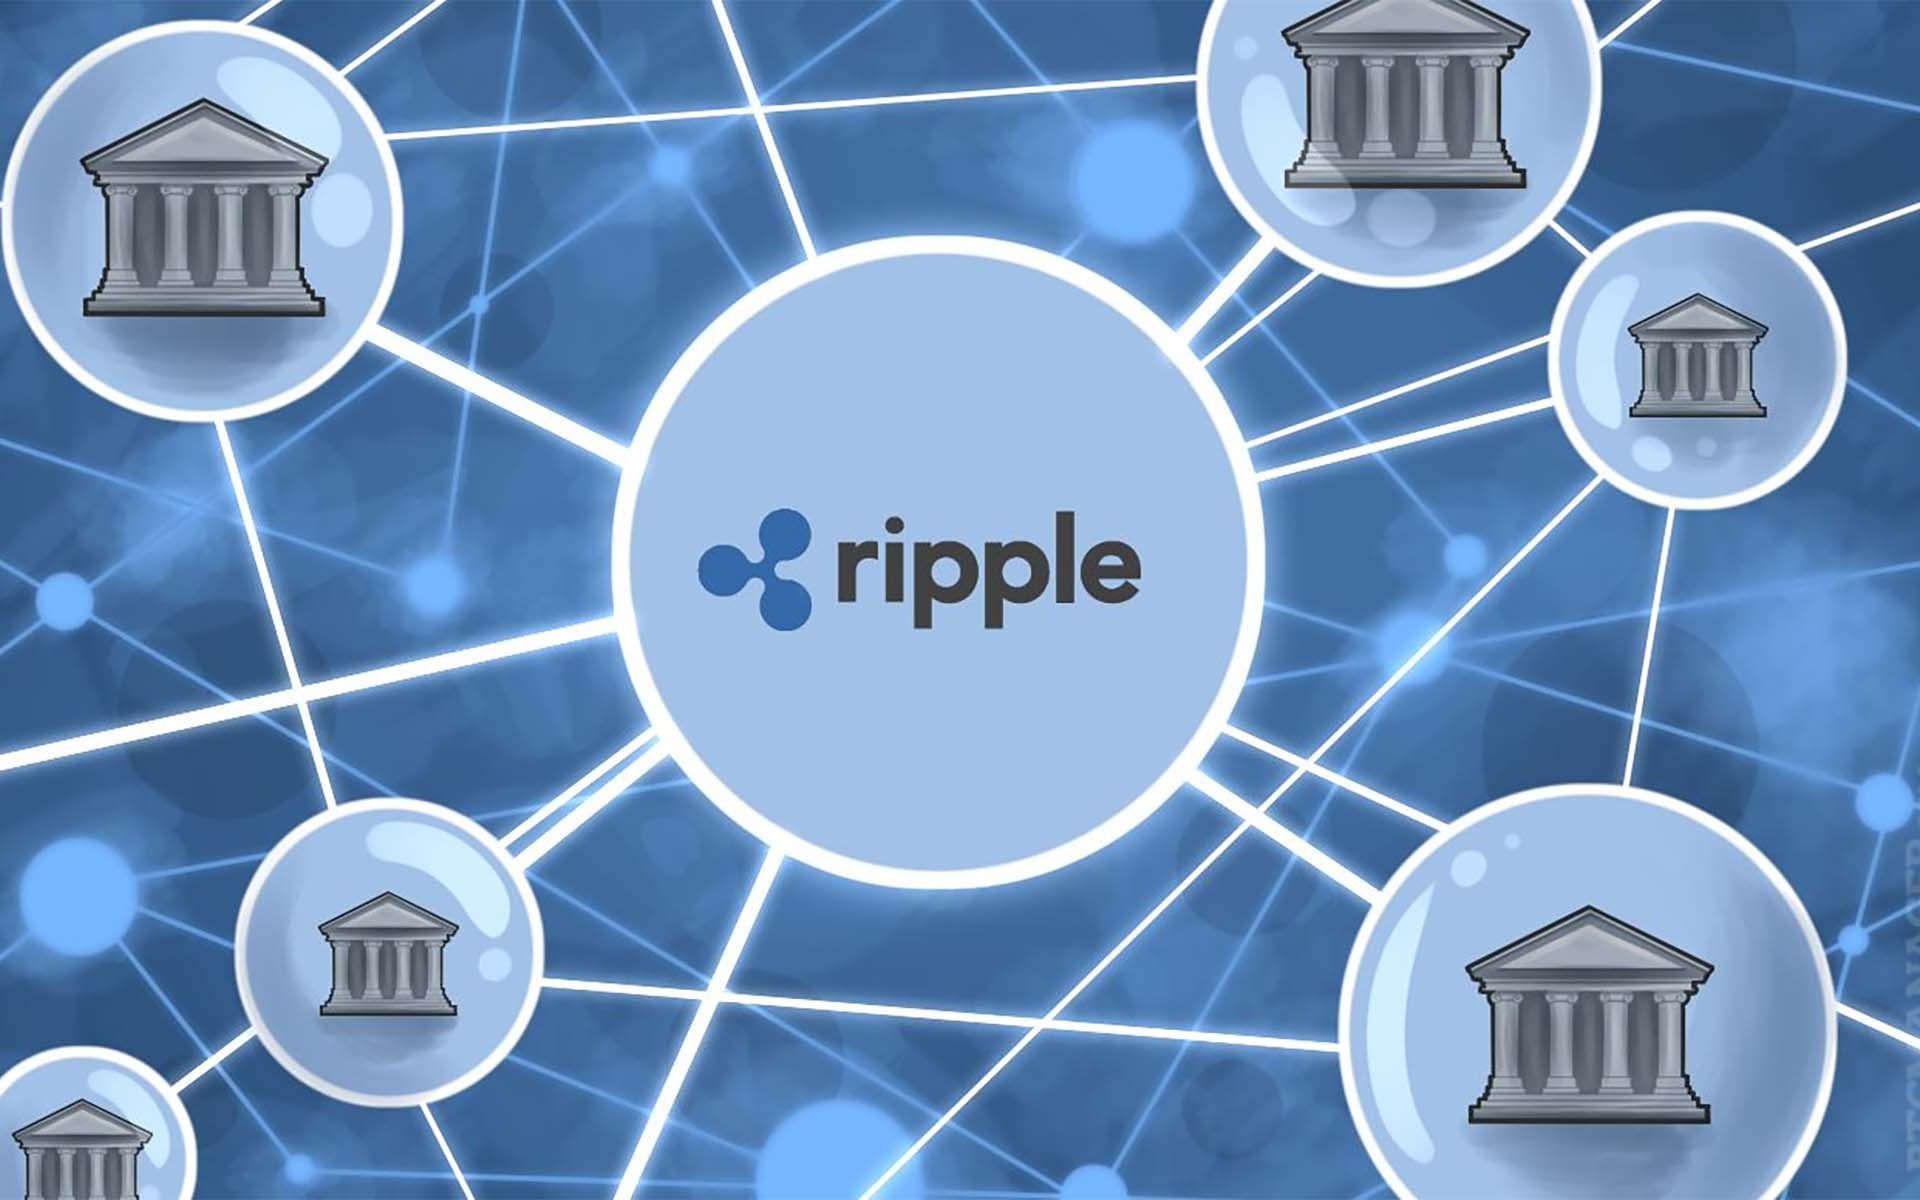 RippleNet Connects Asia-Pacific and South America, Santander Demos One Pay FX Mobile App